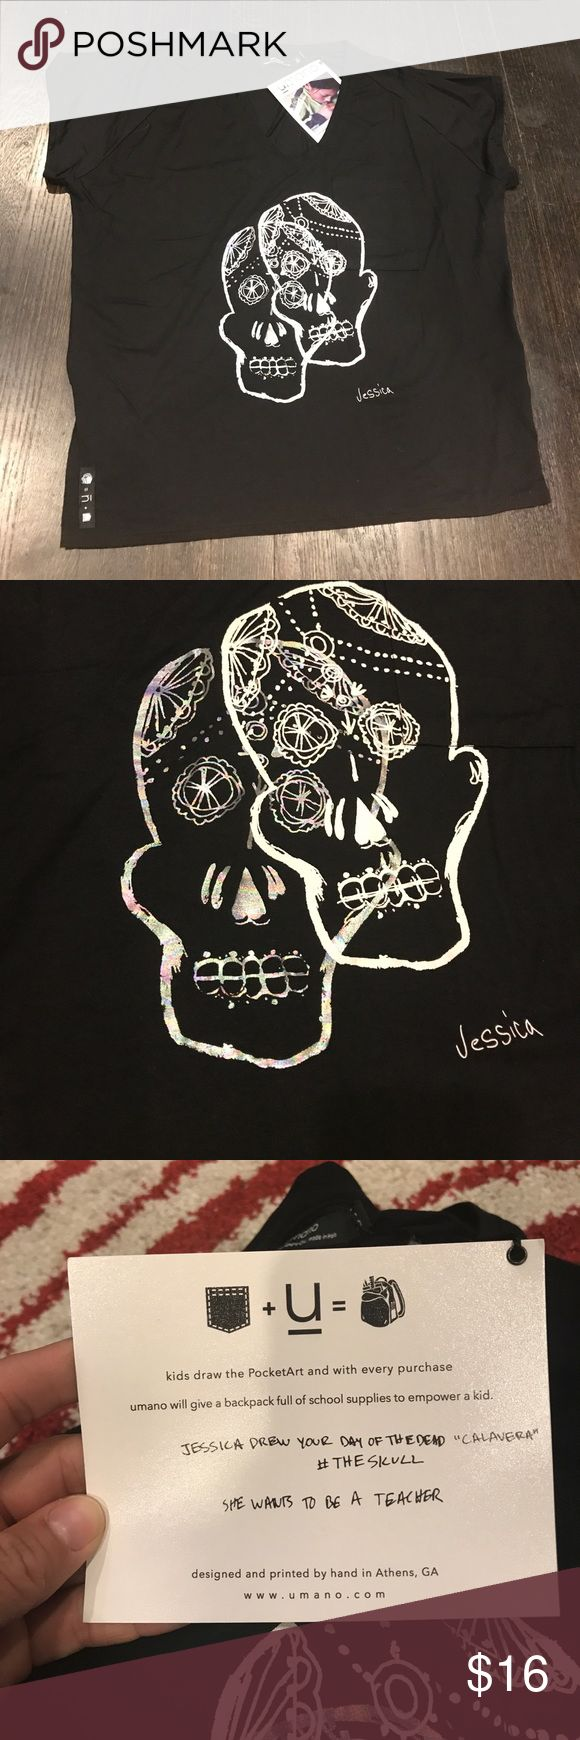 Umano Calavera Skull T shirt Brand new with tags really awesome skull t shirt. One skull is white and another is silver holographic. Drawn by a child and every t shirt sold gives a backpack to a child who needs it. Explanation of program on tag photo.  Fits loose. umano Tops Tees - Short Sleeve